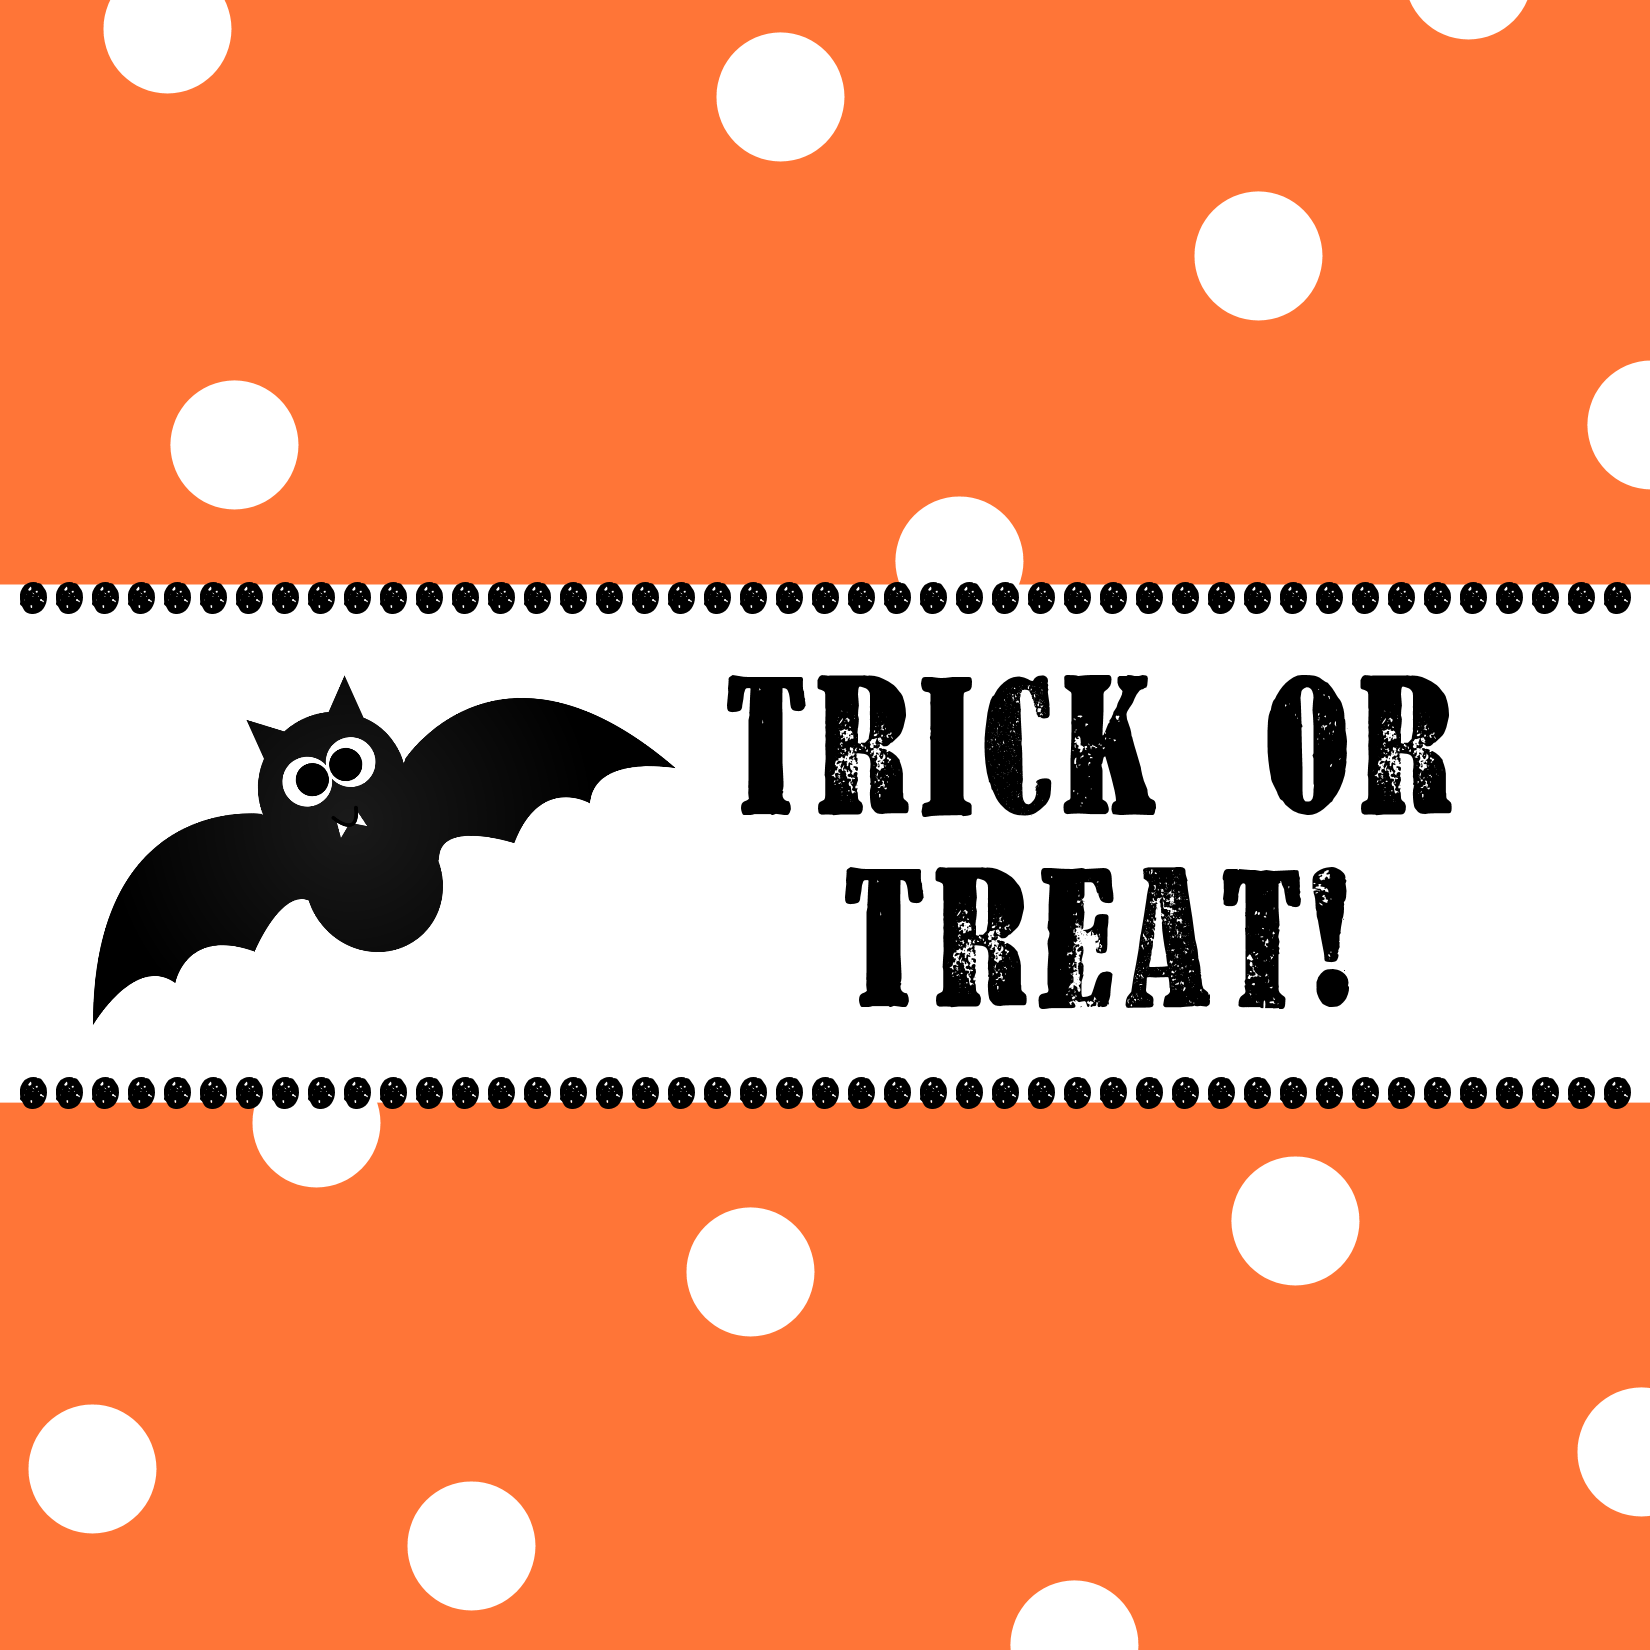 Template Print Here Large Halloween Candy Bar Wrappers Batcandybarwrapper HappyHalloweenCandyBarWrappers